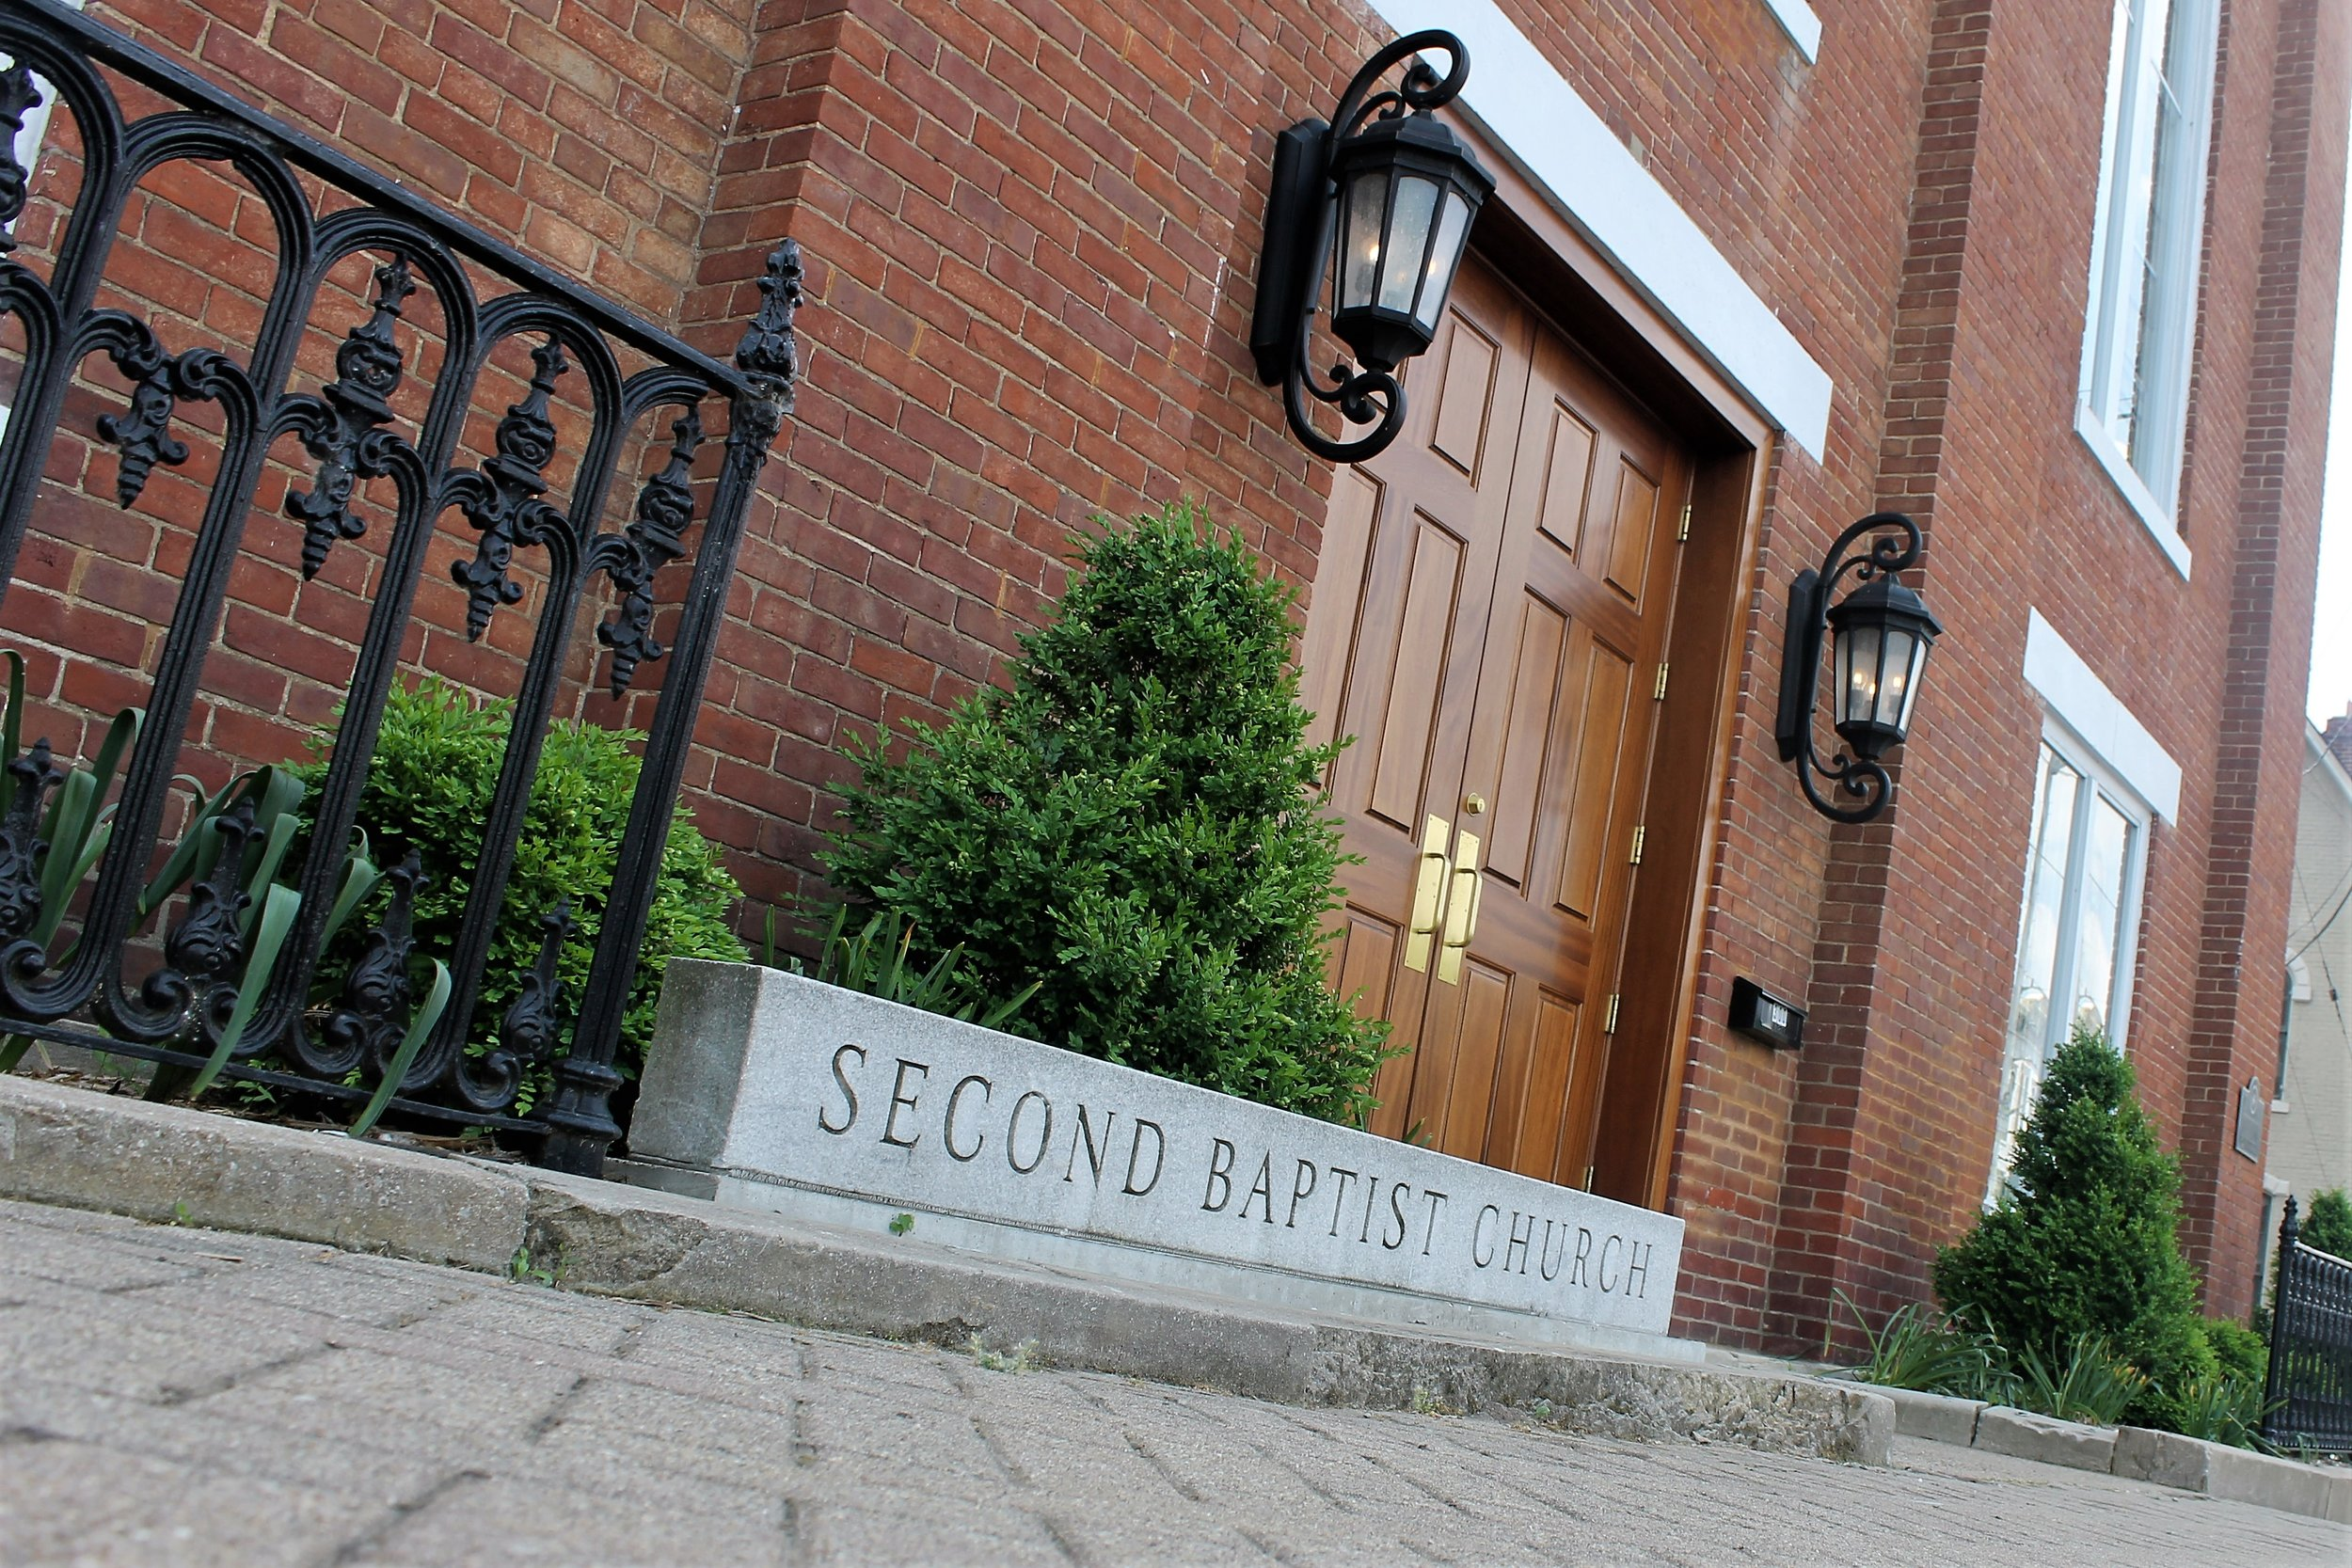 Second Baptist Church on Main Street in New Albany.